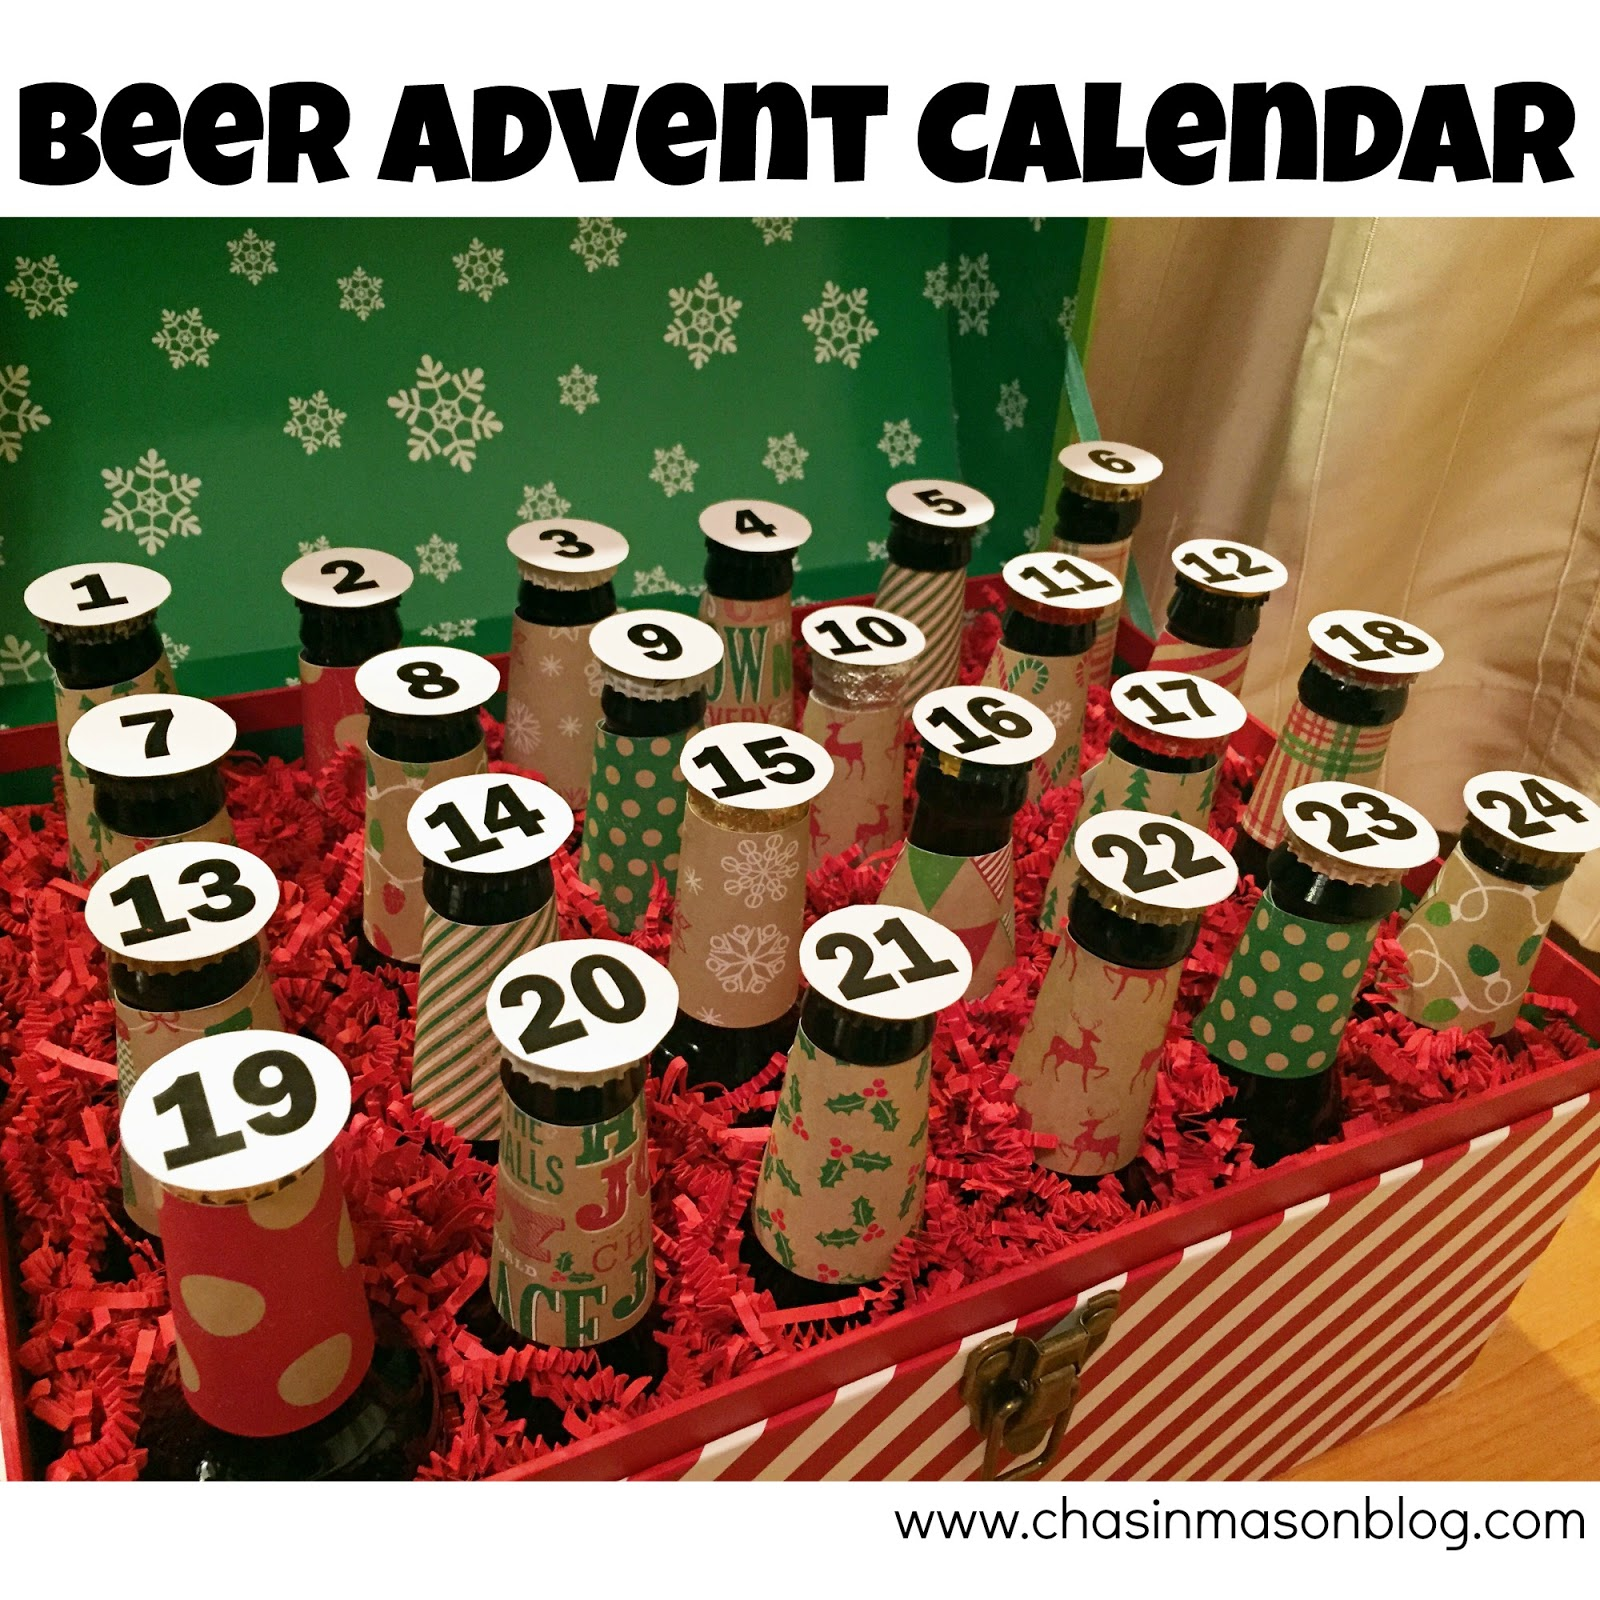 Calendar Ideas For Husband : Chasin mason gifts for the husband diy beer advent